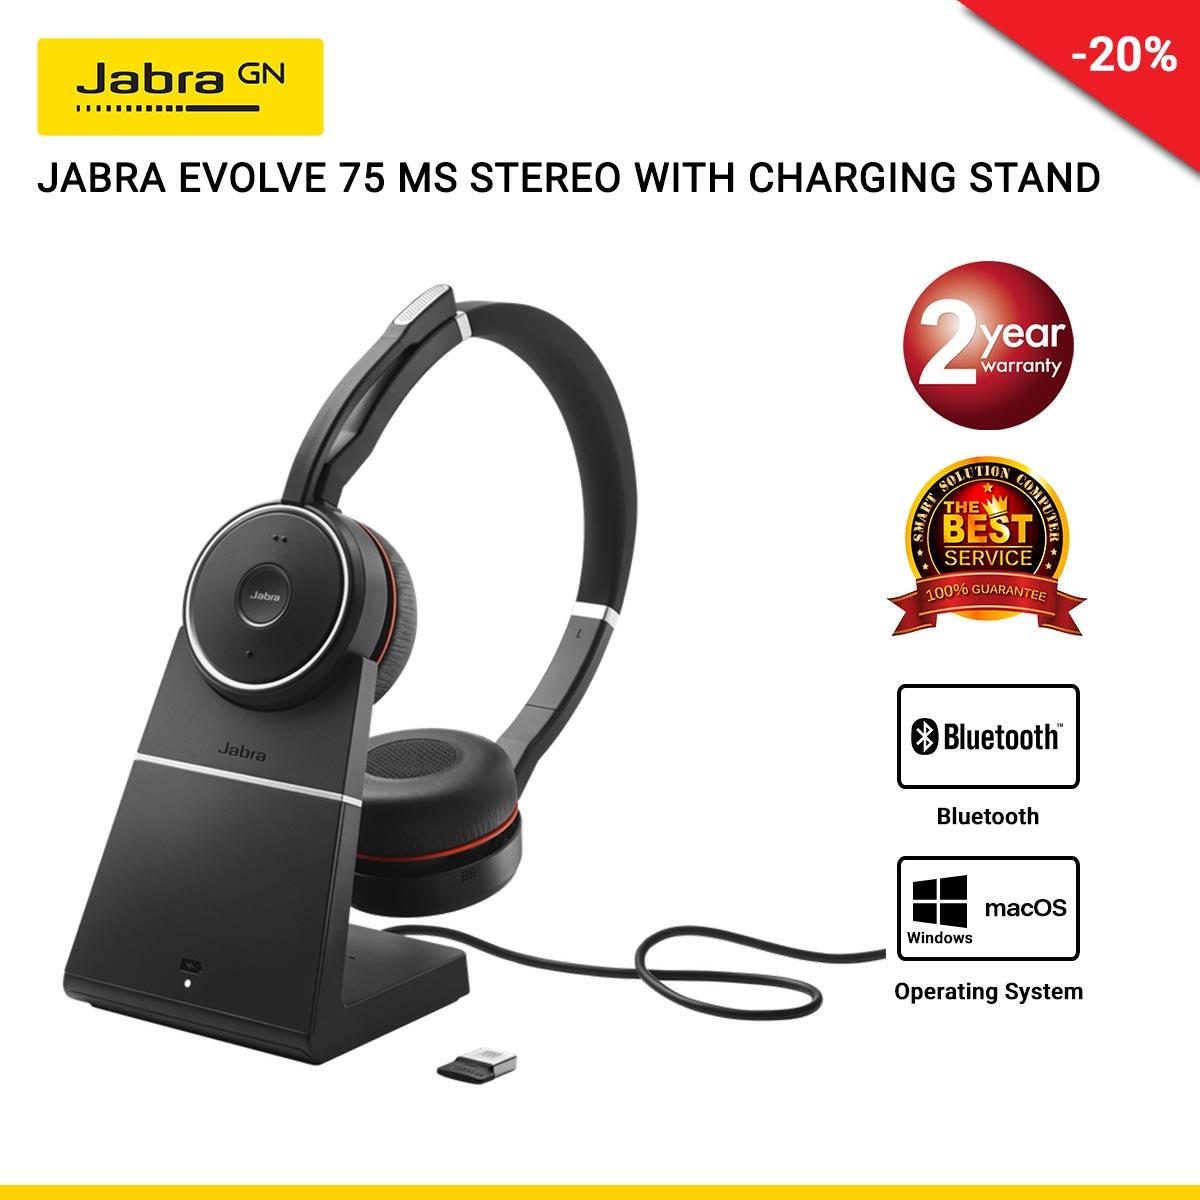 JABRA EVOLVE 75 MS STEREO USB-A With Charging Stand (JBA-7599-832-199)